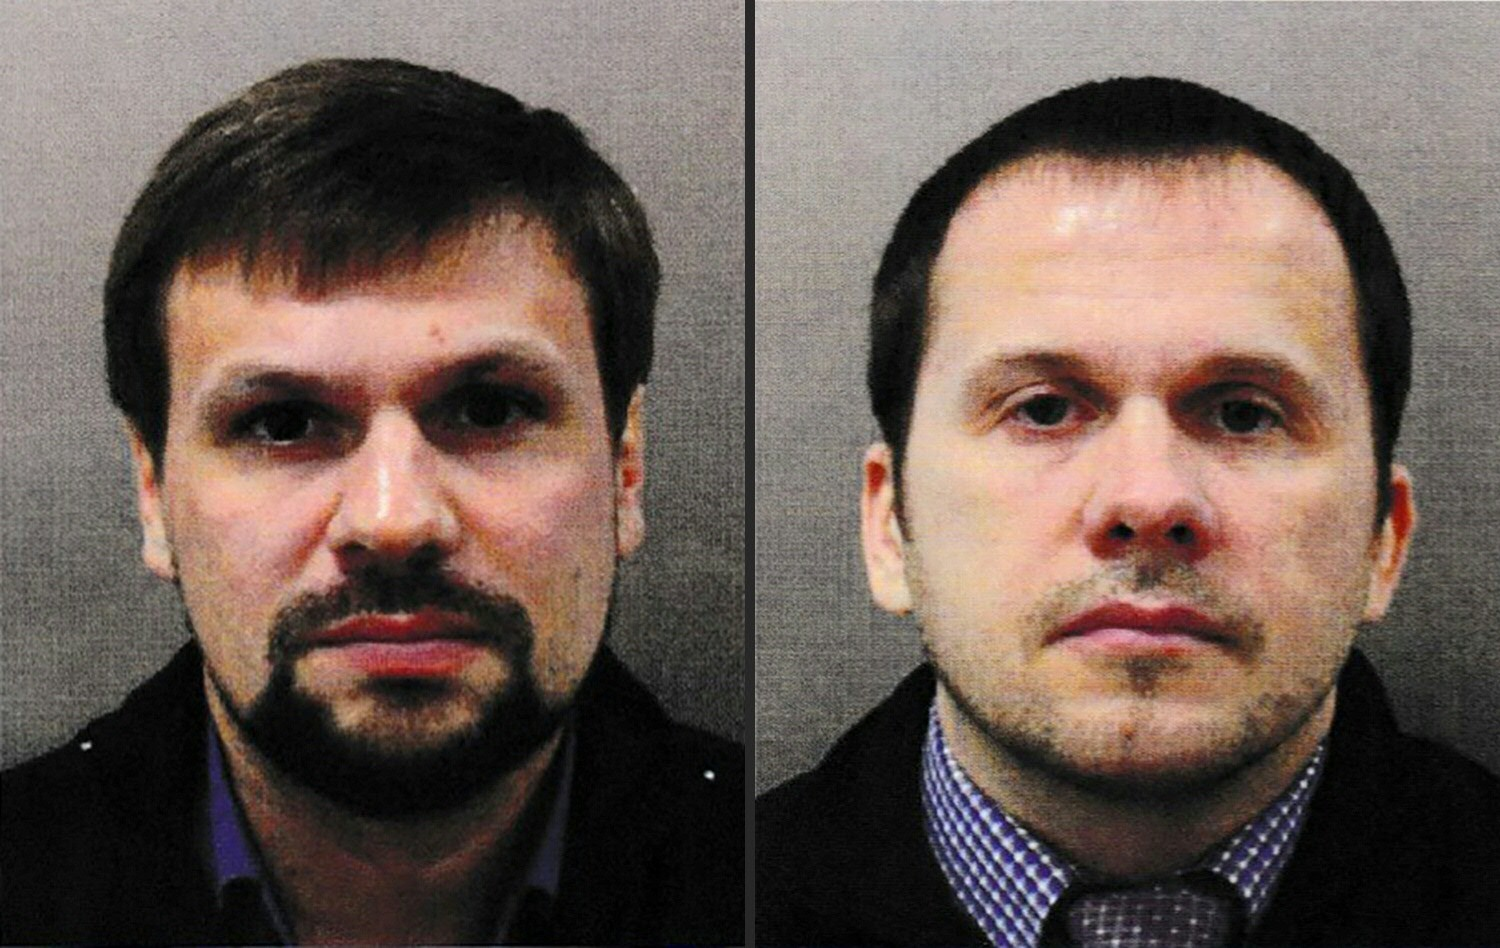 """(COMBO) This combination of undated handout pictures released by the British Metropolitan Police Service  created in London on on September 05, 2018 shows Ruslan Boshirov (L) and Alexander Petrov, who are wanted by British police in connection with the nerve agent attack on former Russian spy Sergei Skripal and his daughter Yulia. - British prosecutors said Wednesday they have obtained a European arrest warrant for two Russians blamed for a nerve agent attack on a former spy in the city of Salisbury. Police identified Alexander Petrov and Ruslan Boshirov as the men who tried to kill Russian former double agent Sergei Skripal and his daughter Yulia with Novichok in March 2018. British prosecutors said Wednesday they have obtained a European arrest warrant for two Russians blamed for a nerve agent attack on a former spy in the city of Salisbury. Police identified Alexander Petrov and Ruslan Boshirov as the men who tried to kill Russian former double agent Sergei Skripal and his daughter Yulia with Novichok in March 2018. (Photos by HO / Metropolitan Police Service / AFP) / RESTRICTED TO EDITORIAL USE - MANDATORY CREDIT  """" AFP PHOTO / Metropolitan Police Service""""  -  NO MARKETING NO ADVERTISING CAMPAIGNS   -   DISTRIBUTED AS A SERVICE TO CLIENTS  RESTRICTED TO EDITORIAL USE - MANDATORY CREDIT  """" AFP PHOTO / Metropolitan Police Service""""  -  NO MARKETING NO ADVERTISING CAMPAIGNS   -   DISTRIBUTED AS A SERVICE TO CLIENTS /"""